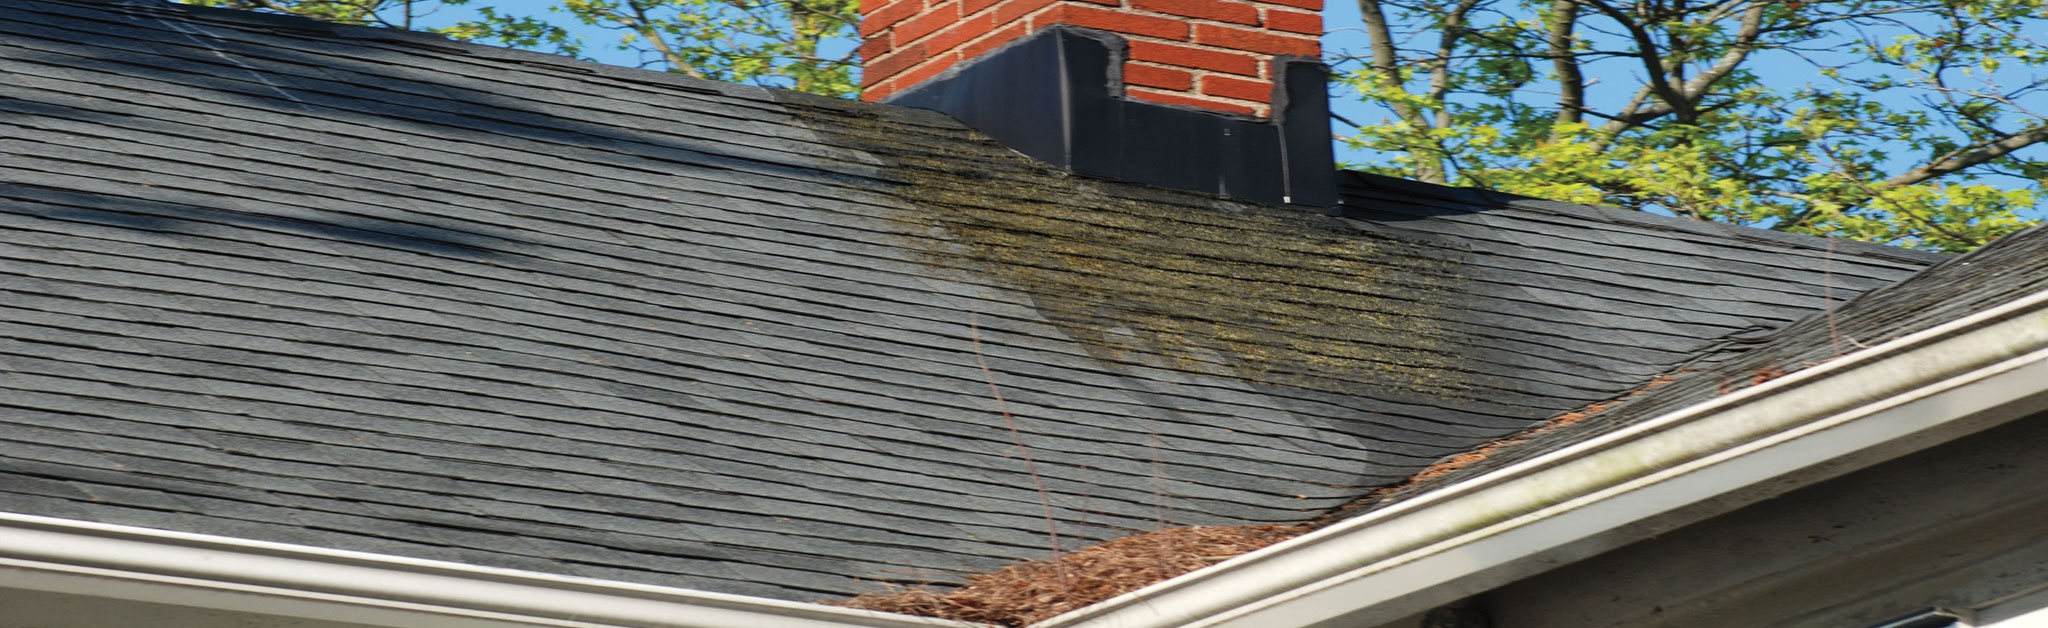 D.S. Fitz Roofing Images